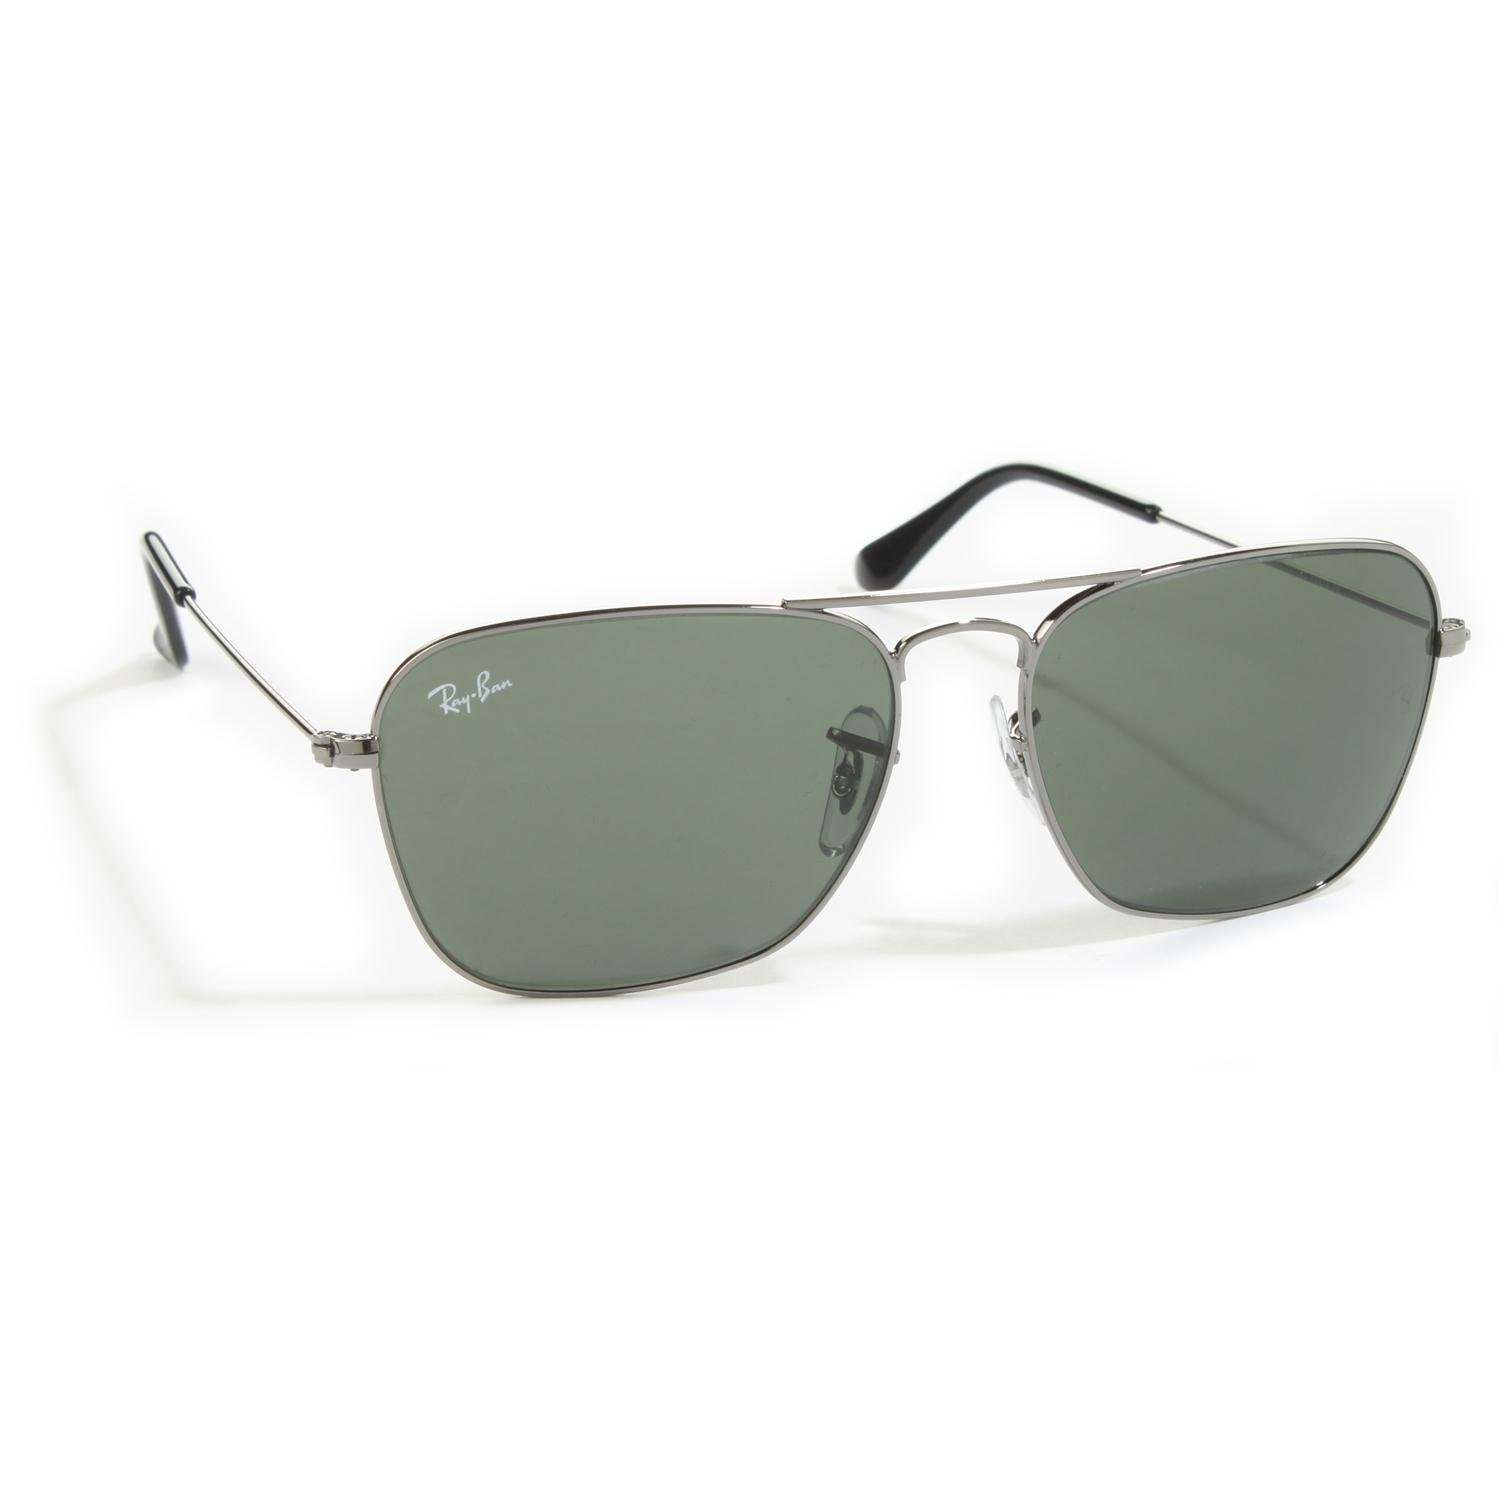 Whole Ray Ban Sunglasses Bulk  eyewear archives glasses